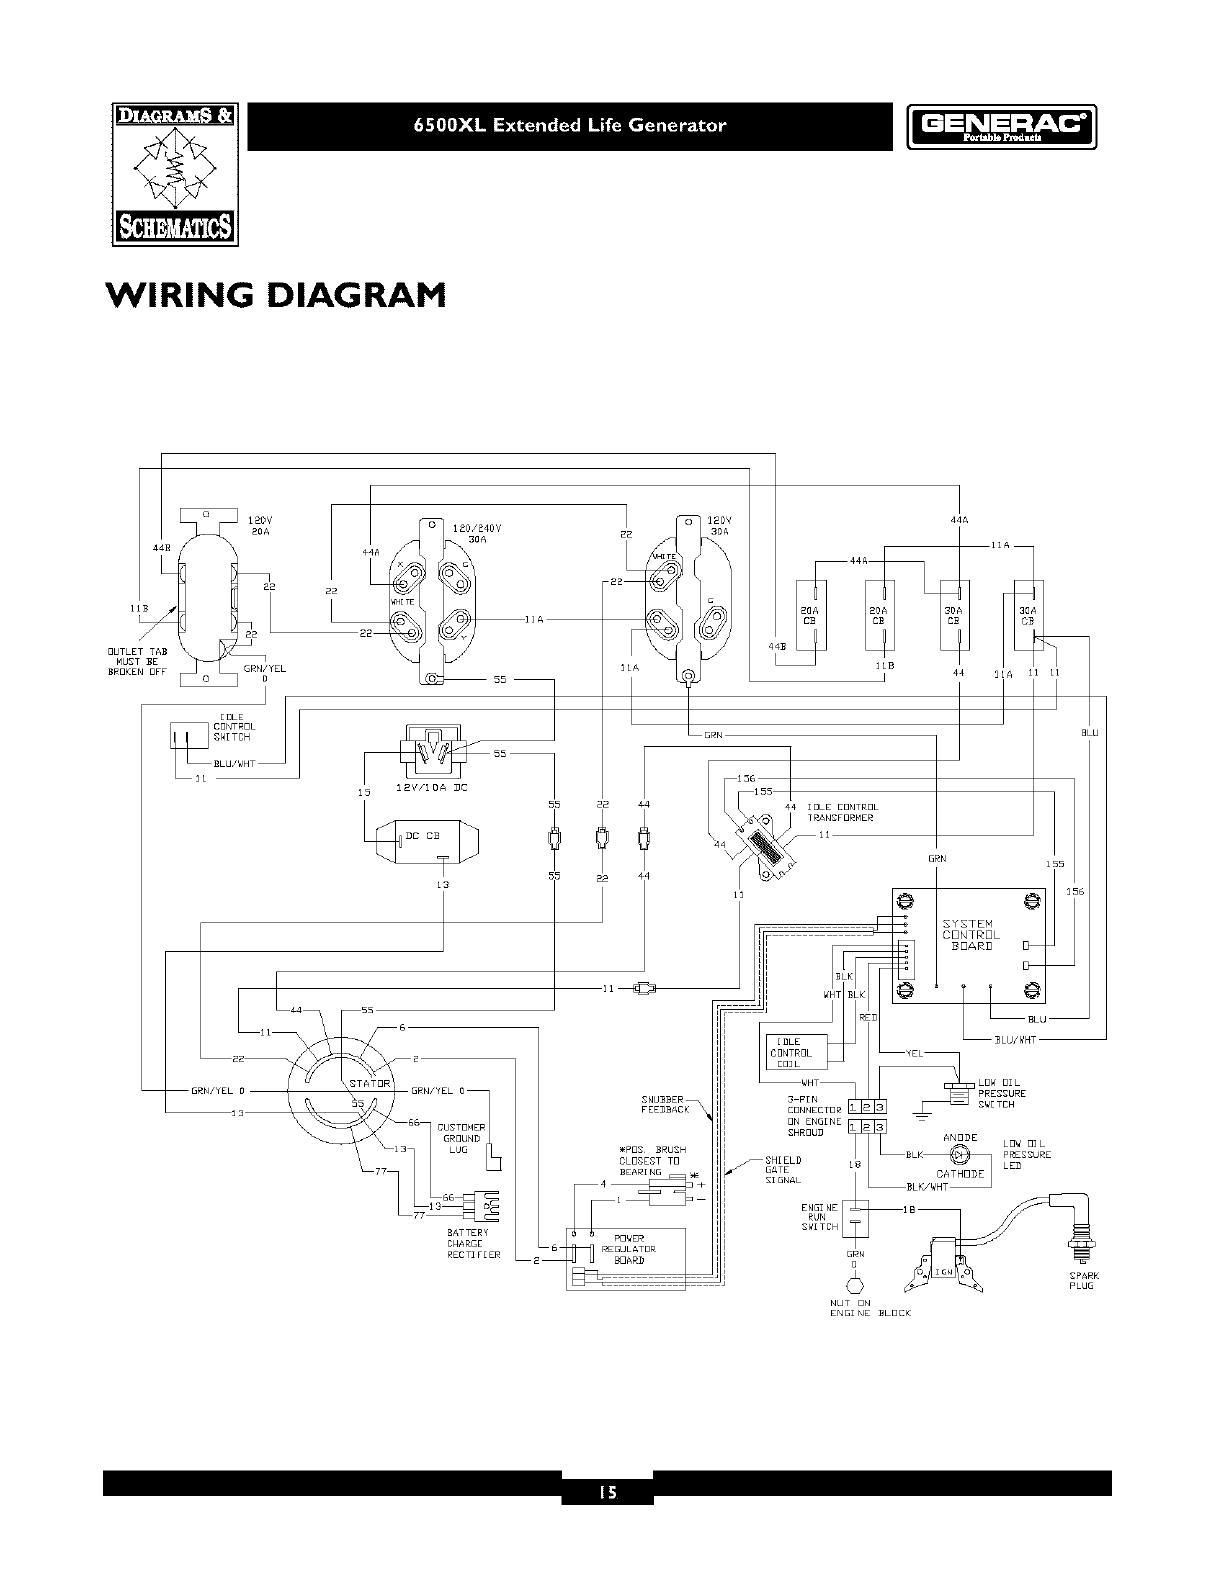 abacbfe4 09c9 46f3 b904 b7a0ca98baaa bgf page 15 of generac portable generator 6500xl user guide abac air compressor wiring diagram at readyjetset.co